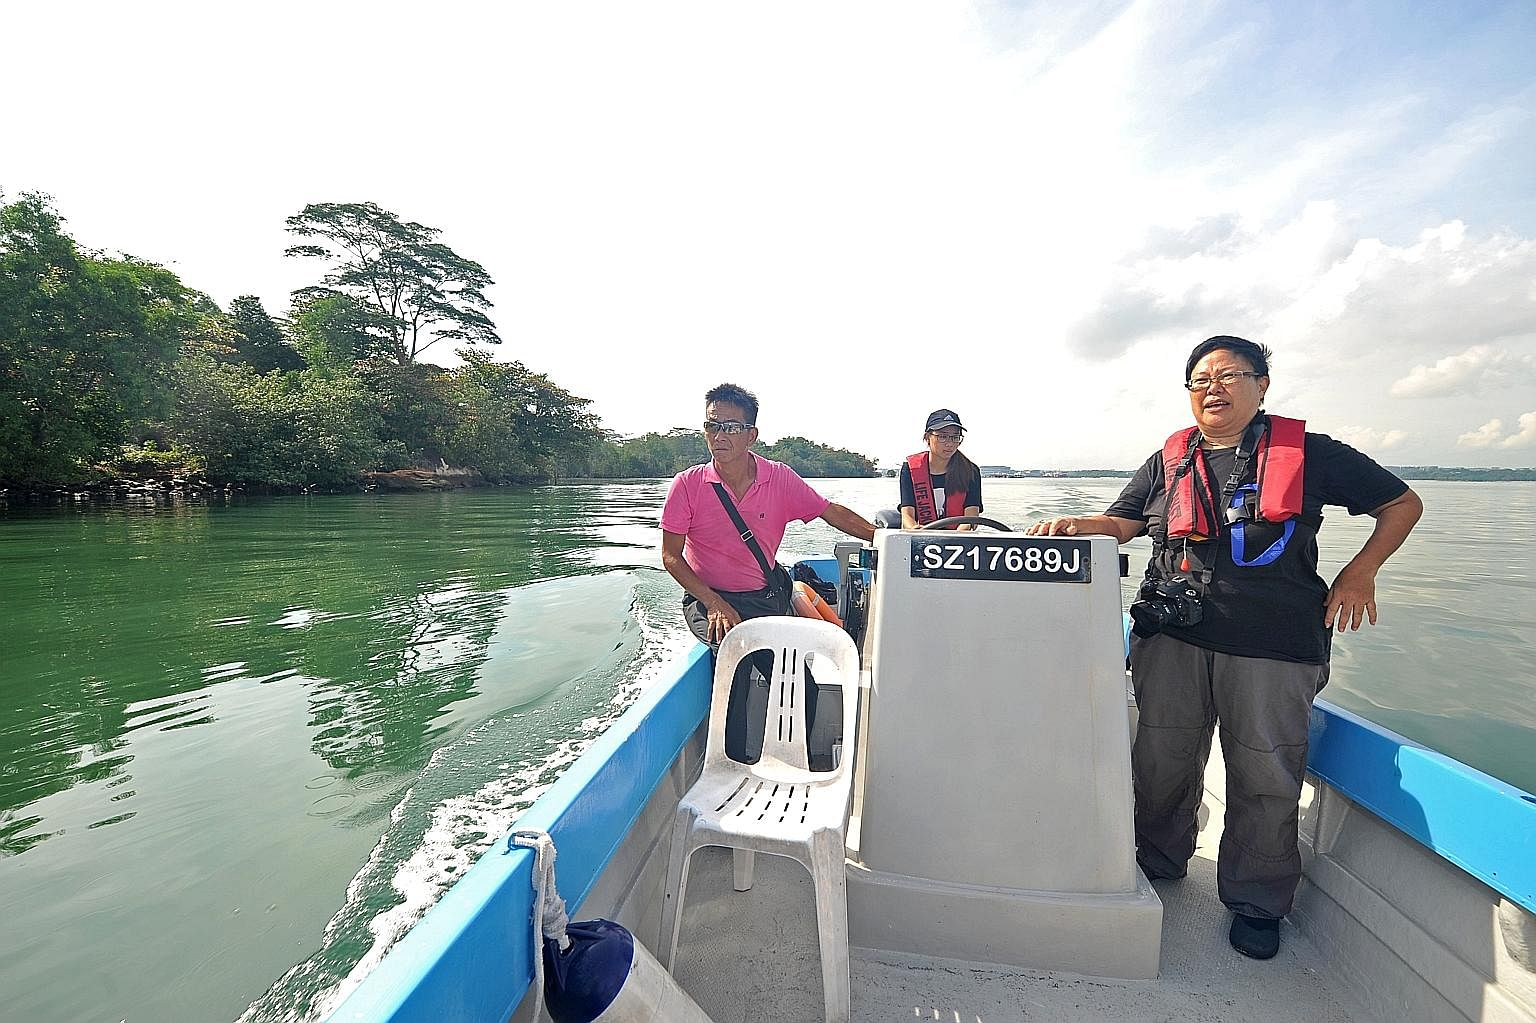 (From left) Ubin fish farmer Philip Lim, geography student Vanessa Teo and Pesta Ubin coordinator Ria Tan on a boat tour through Ubin's mangroves. Go kayaking at Ubin Quarry (above) with Outward Bound Singapore instructors. Explore Ubin town.